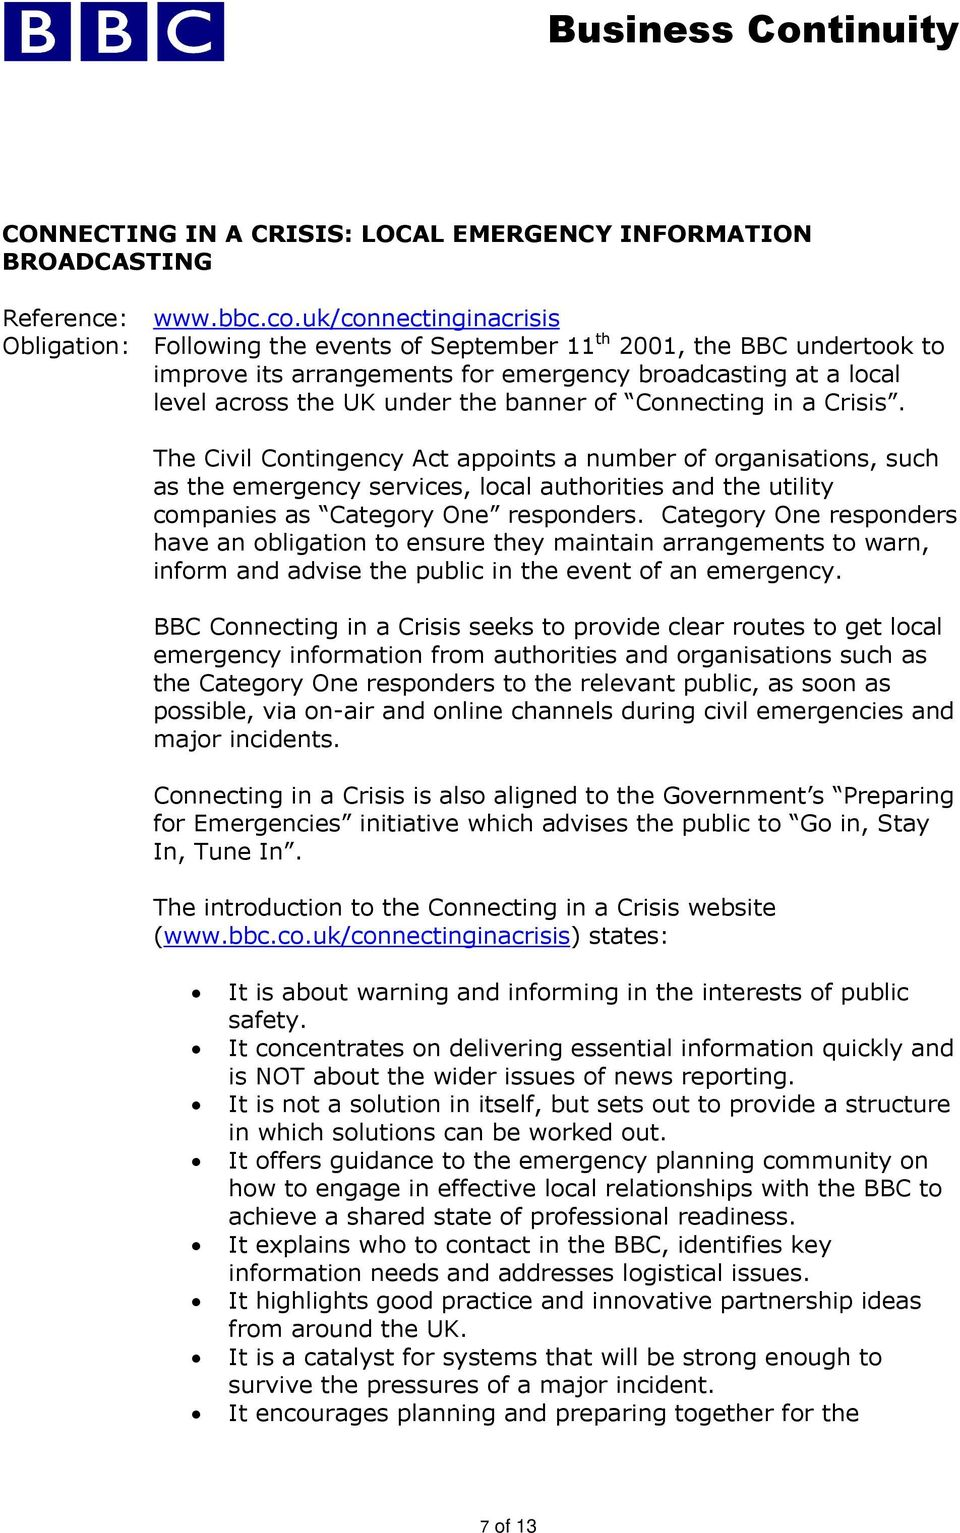 banner of Connecting in a Crisis. The Civil Contingency Act appoints a number of organisations, such as the emergency services, local authorities and the utility companies as Category One responders.